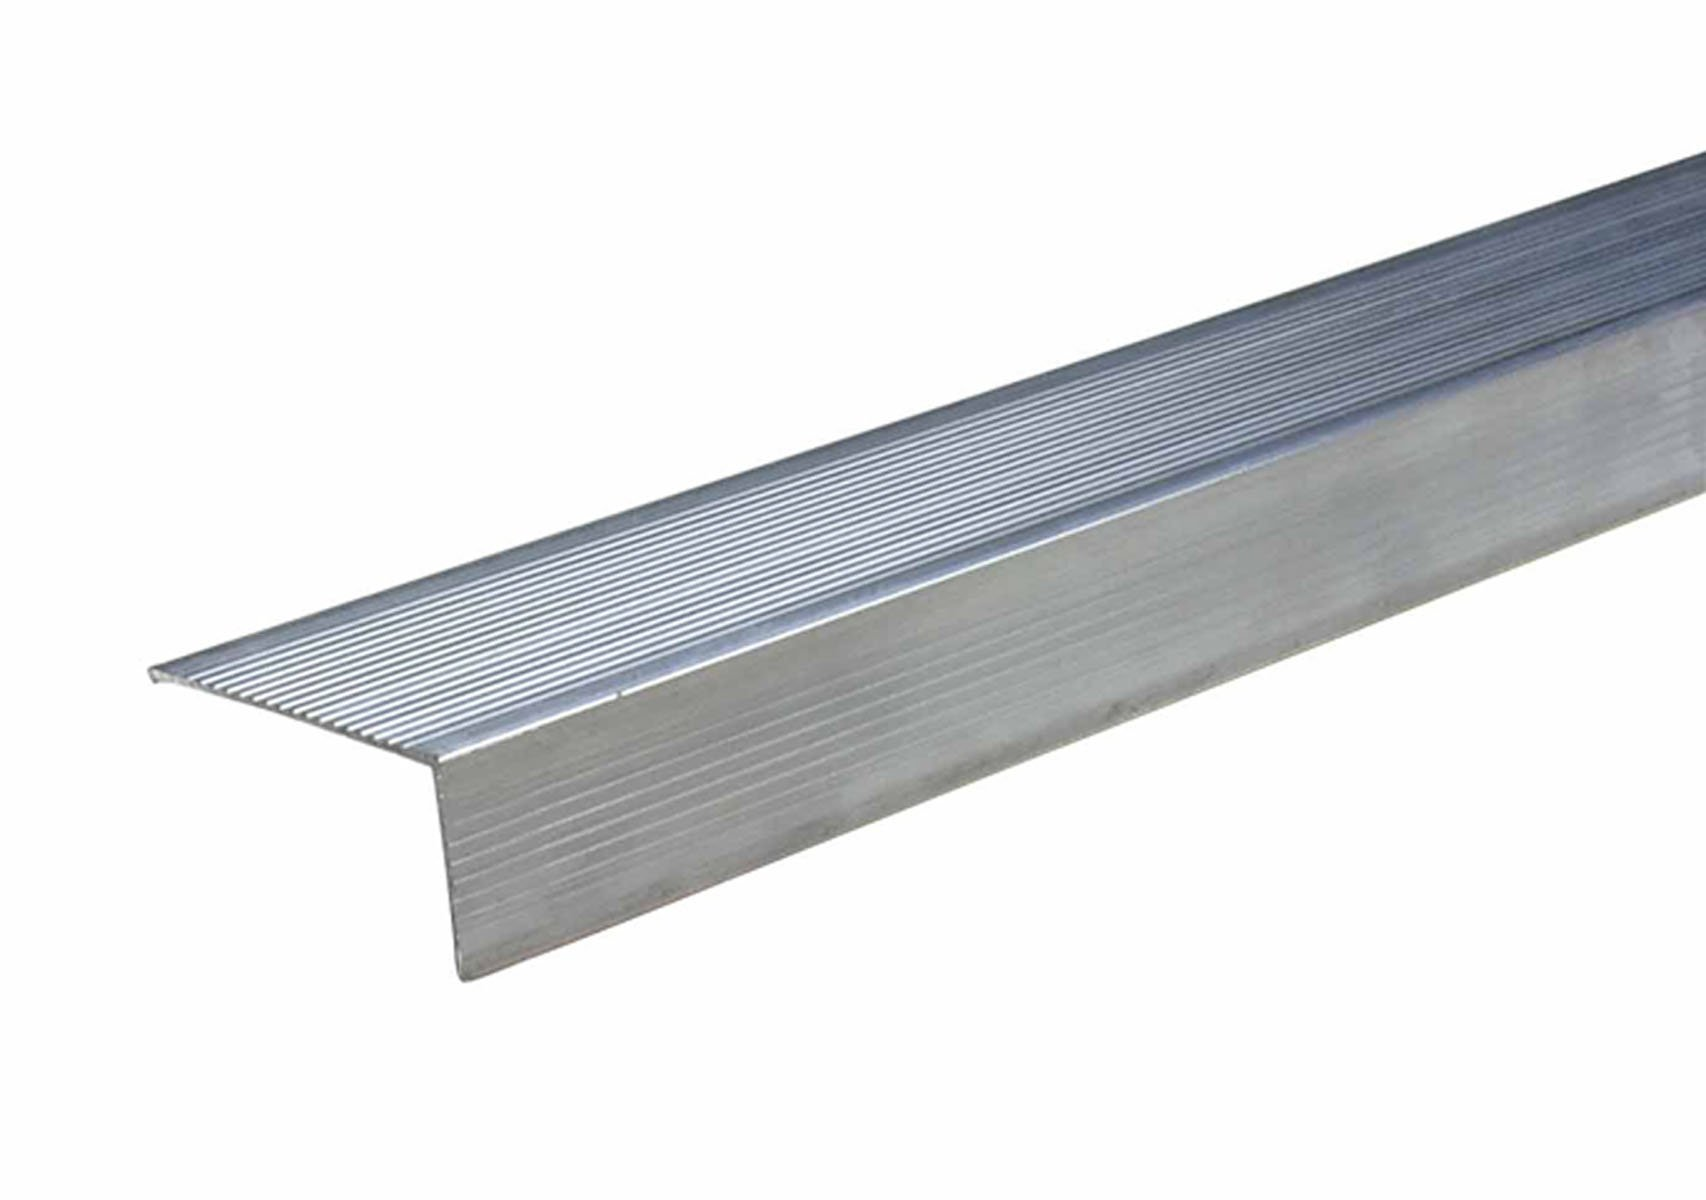 M-D Building Products 69844 4-1/2-Inch by 1-1/2-Inch by 72-Inch TH083 Sill Nosing, Mill